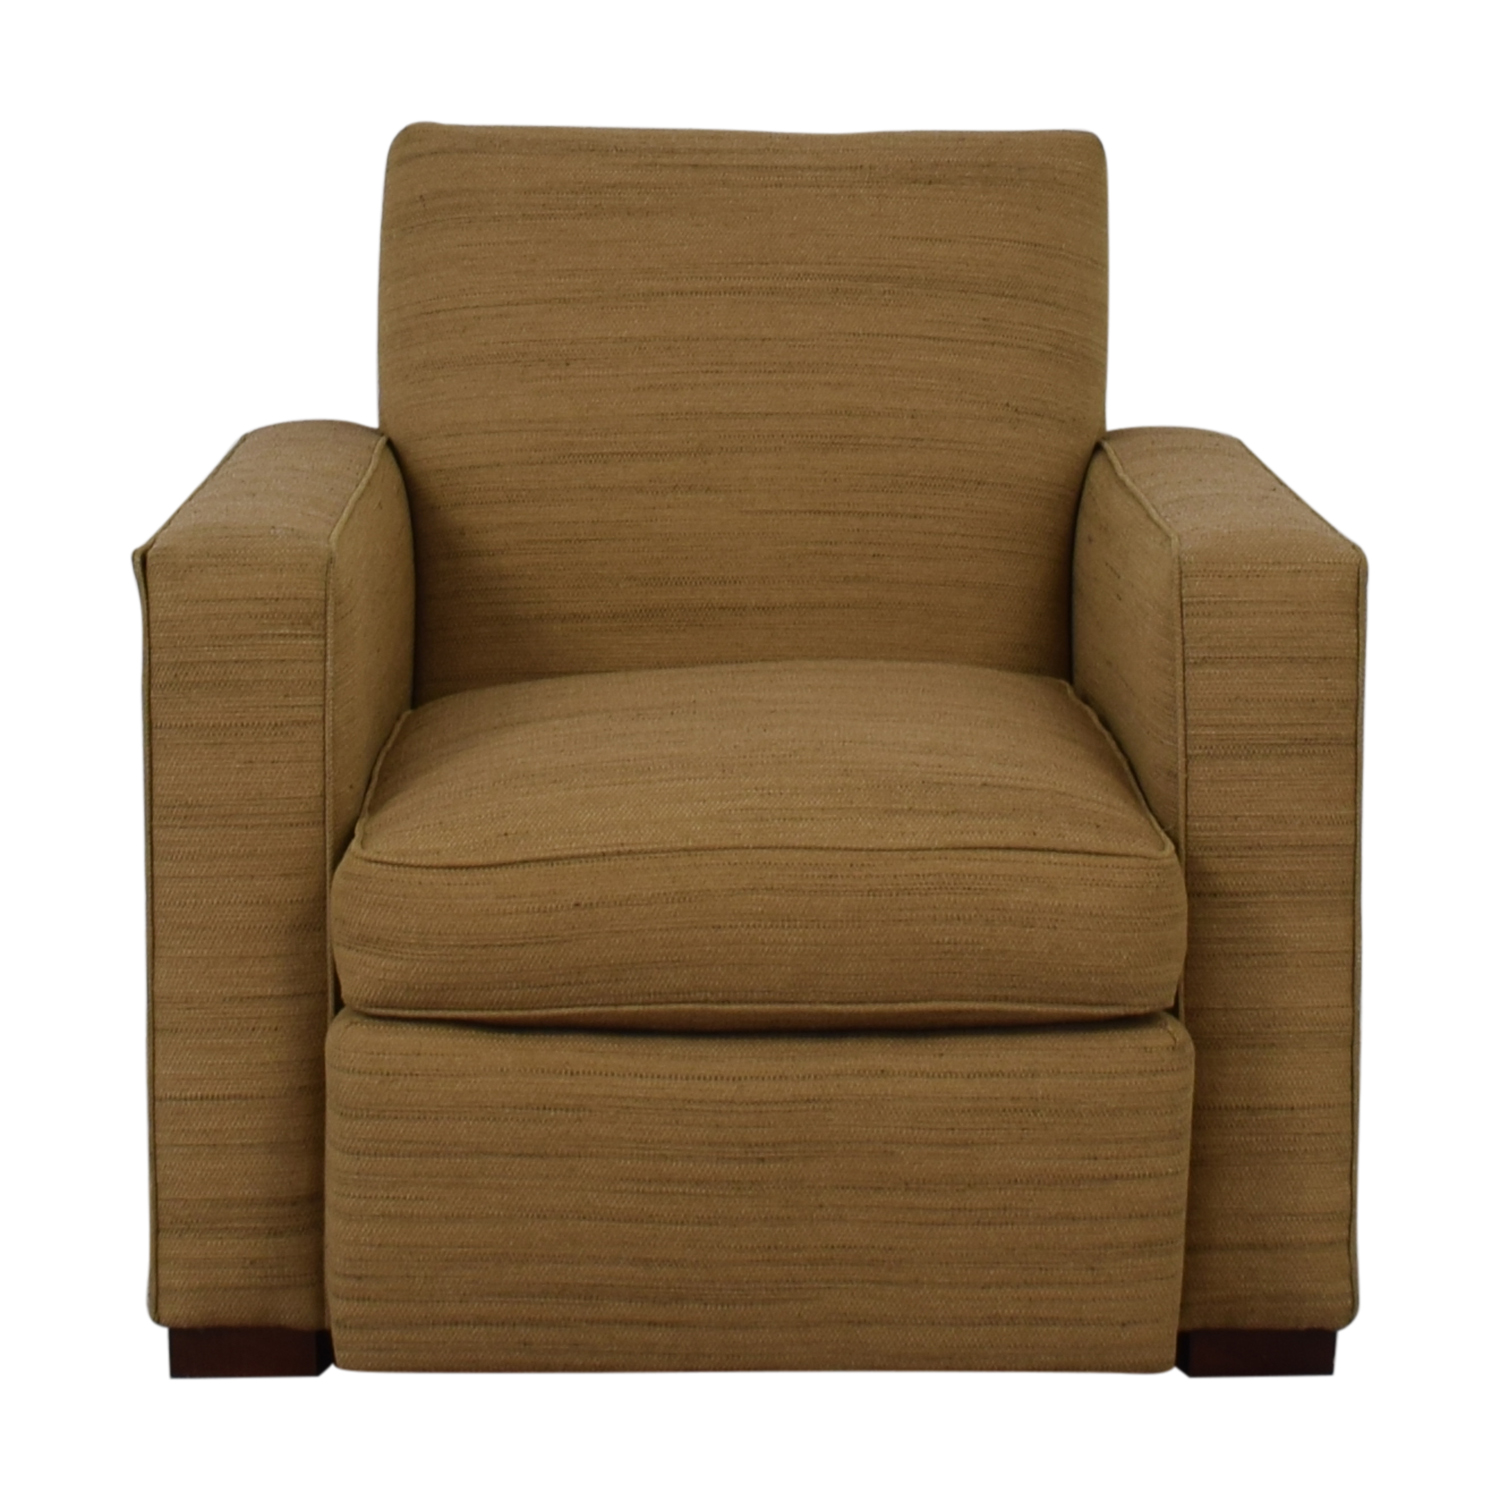 buy Hickory Chair Hickory Chair Accent Chair online